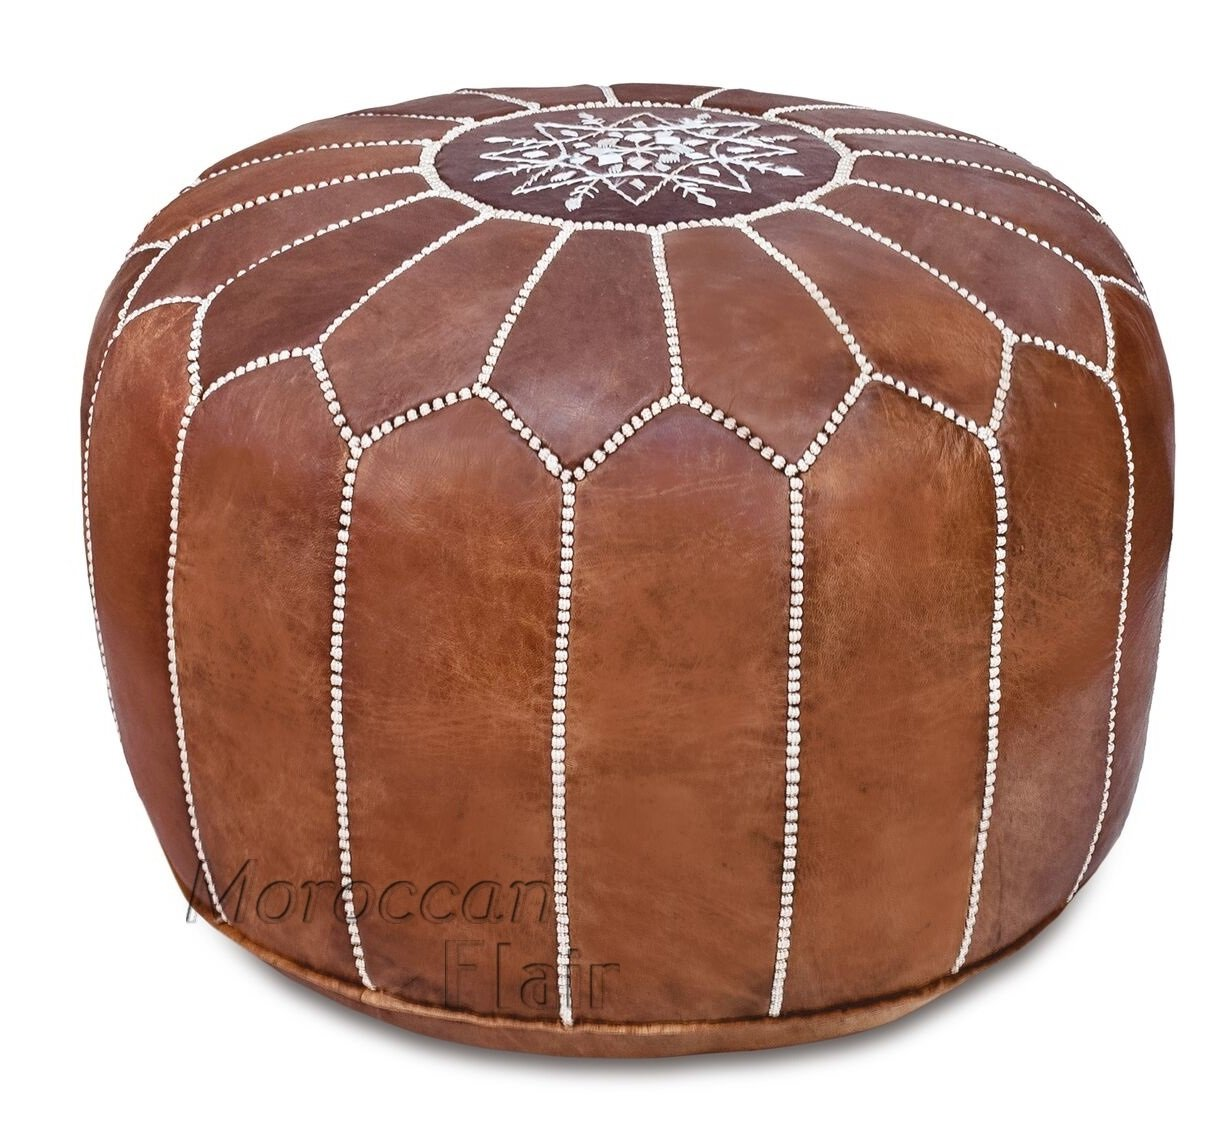 Stuffed Handmade Genuine Leather Moroccan Pouf, Ottoman (Burgandy) Moroccan Flair